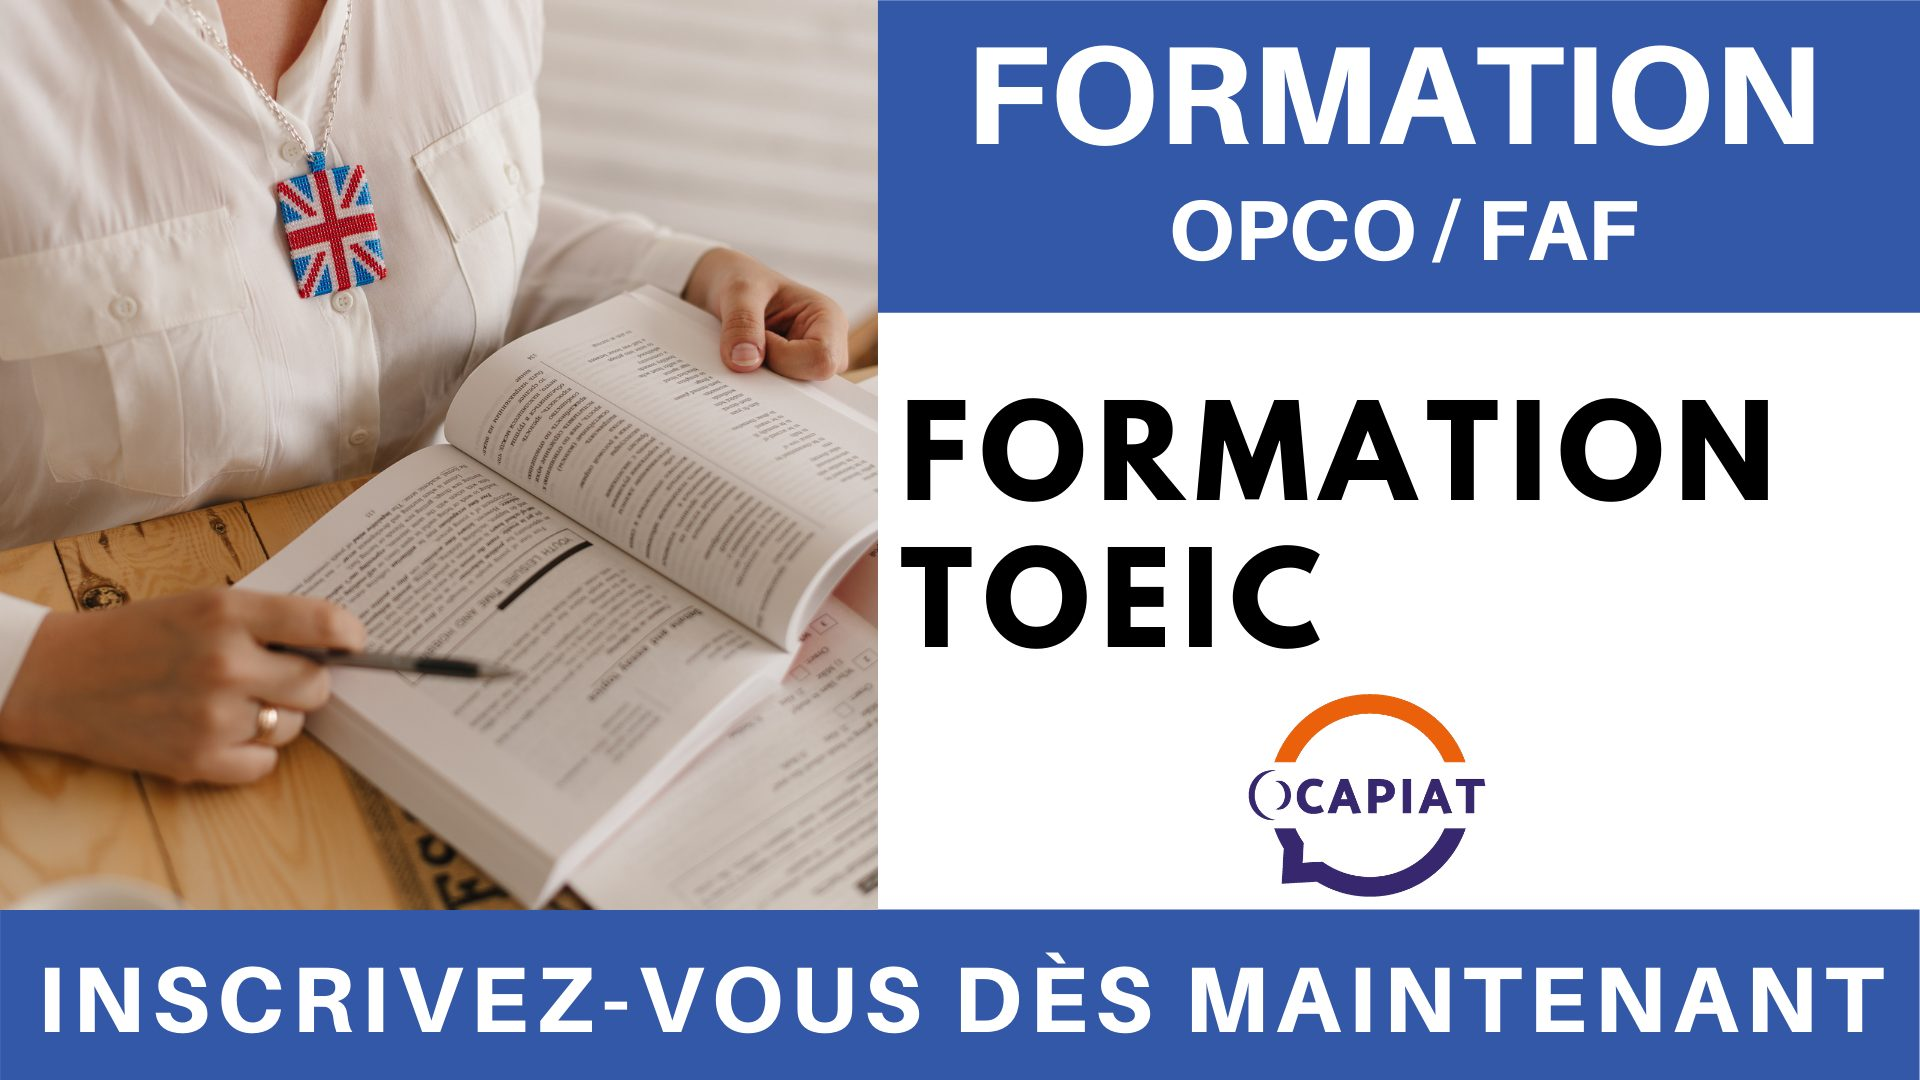 Formation OPCO FAF - Formation TOEIC